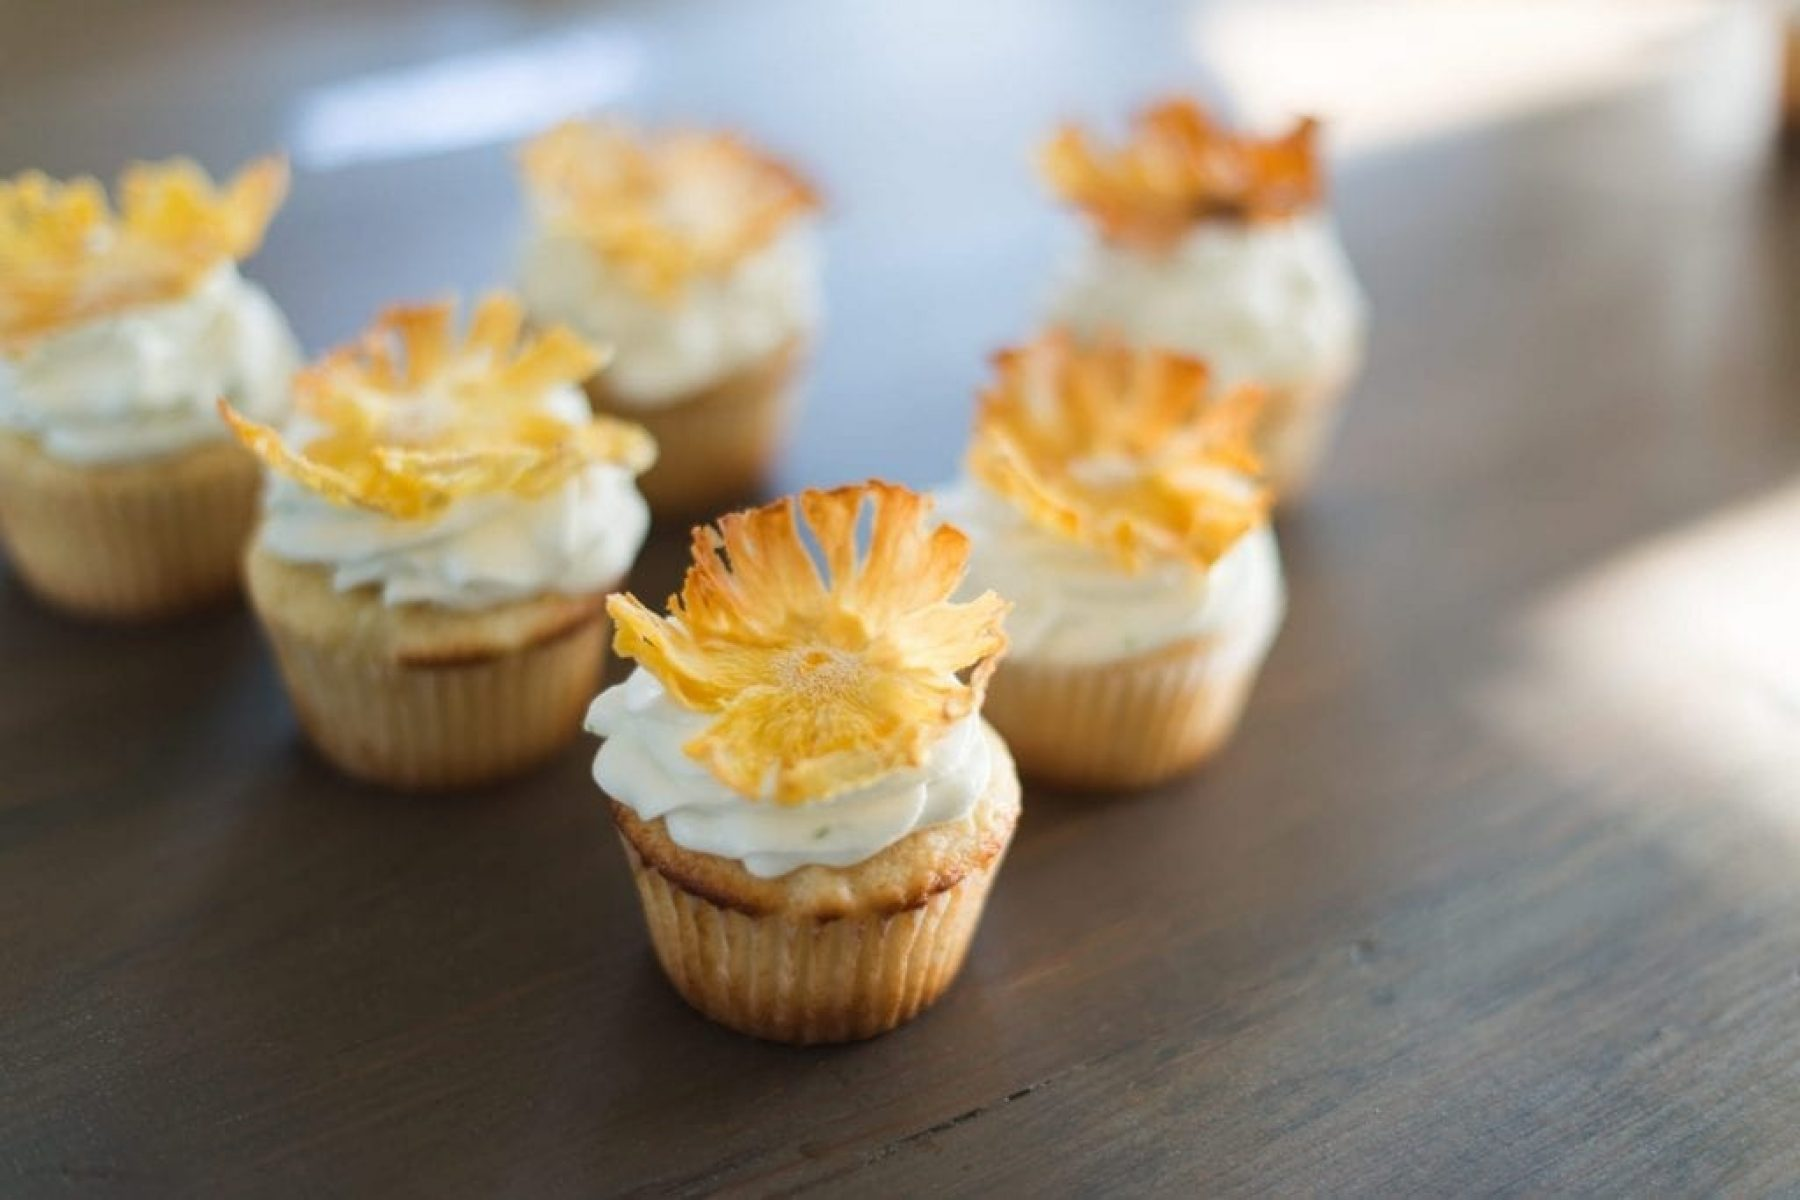 Blogger Ashley Pletcher is inspired by her trip to hawaii so she created a pineapple cupcake recipe with coconut lime frosting